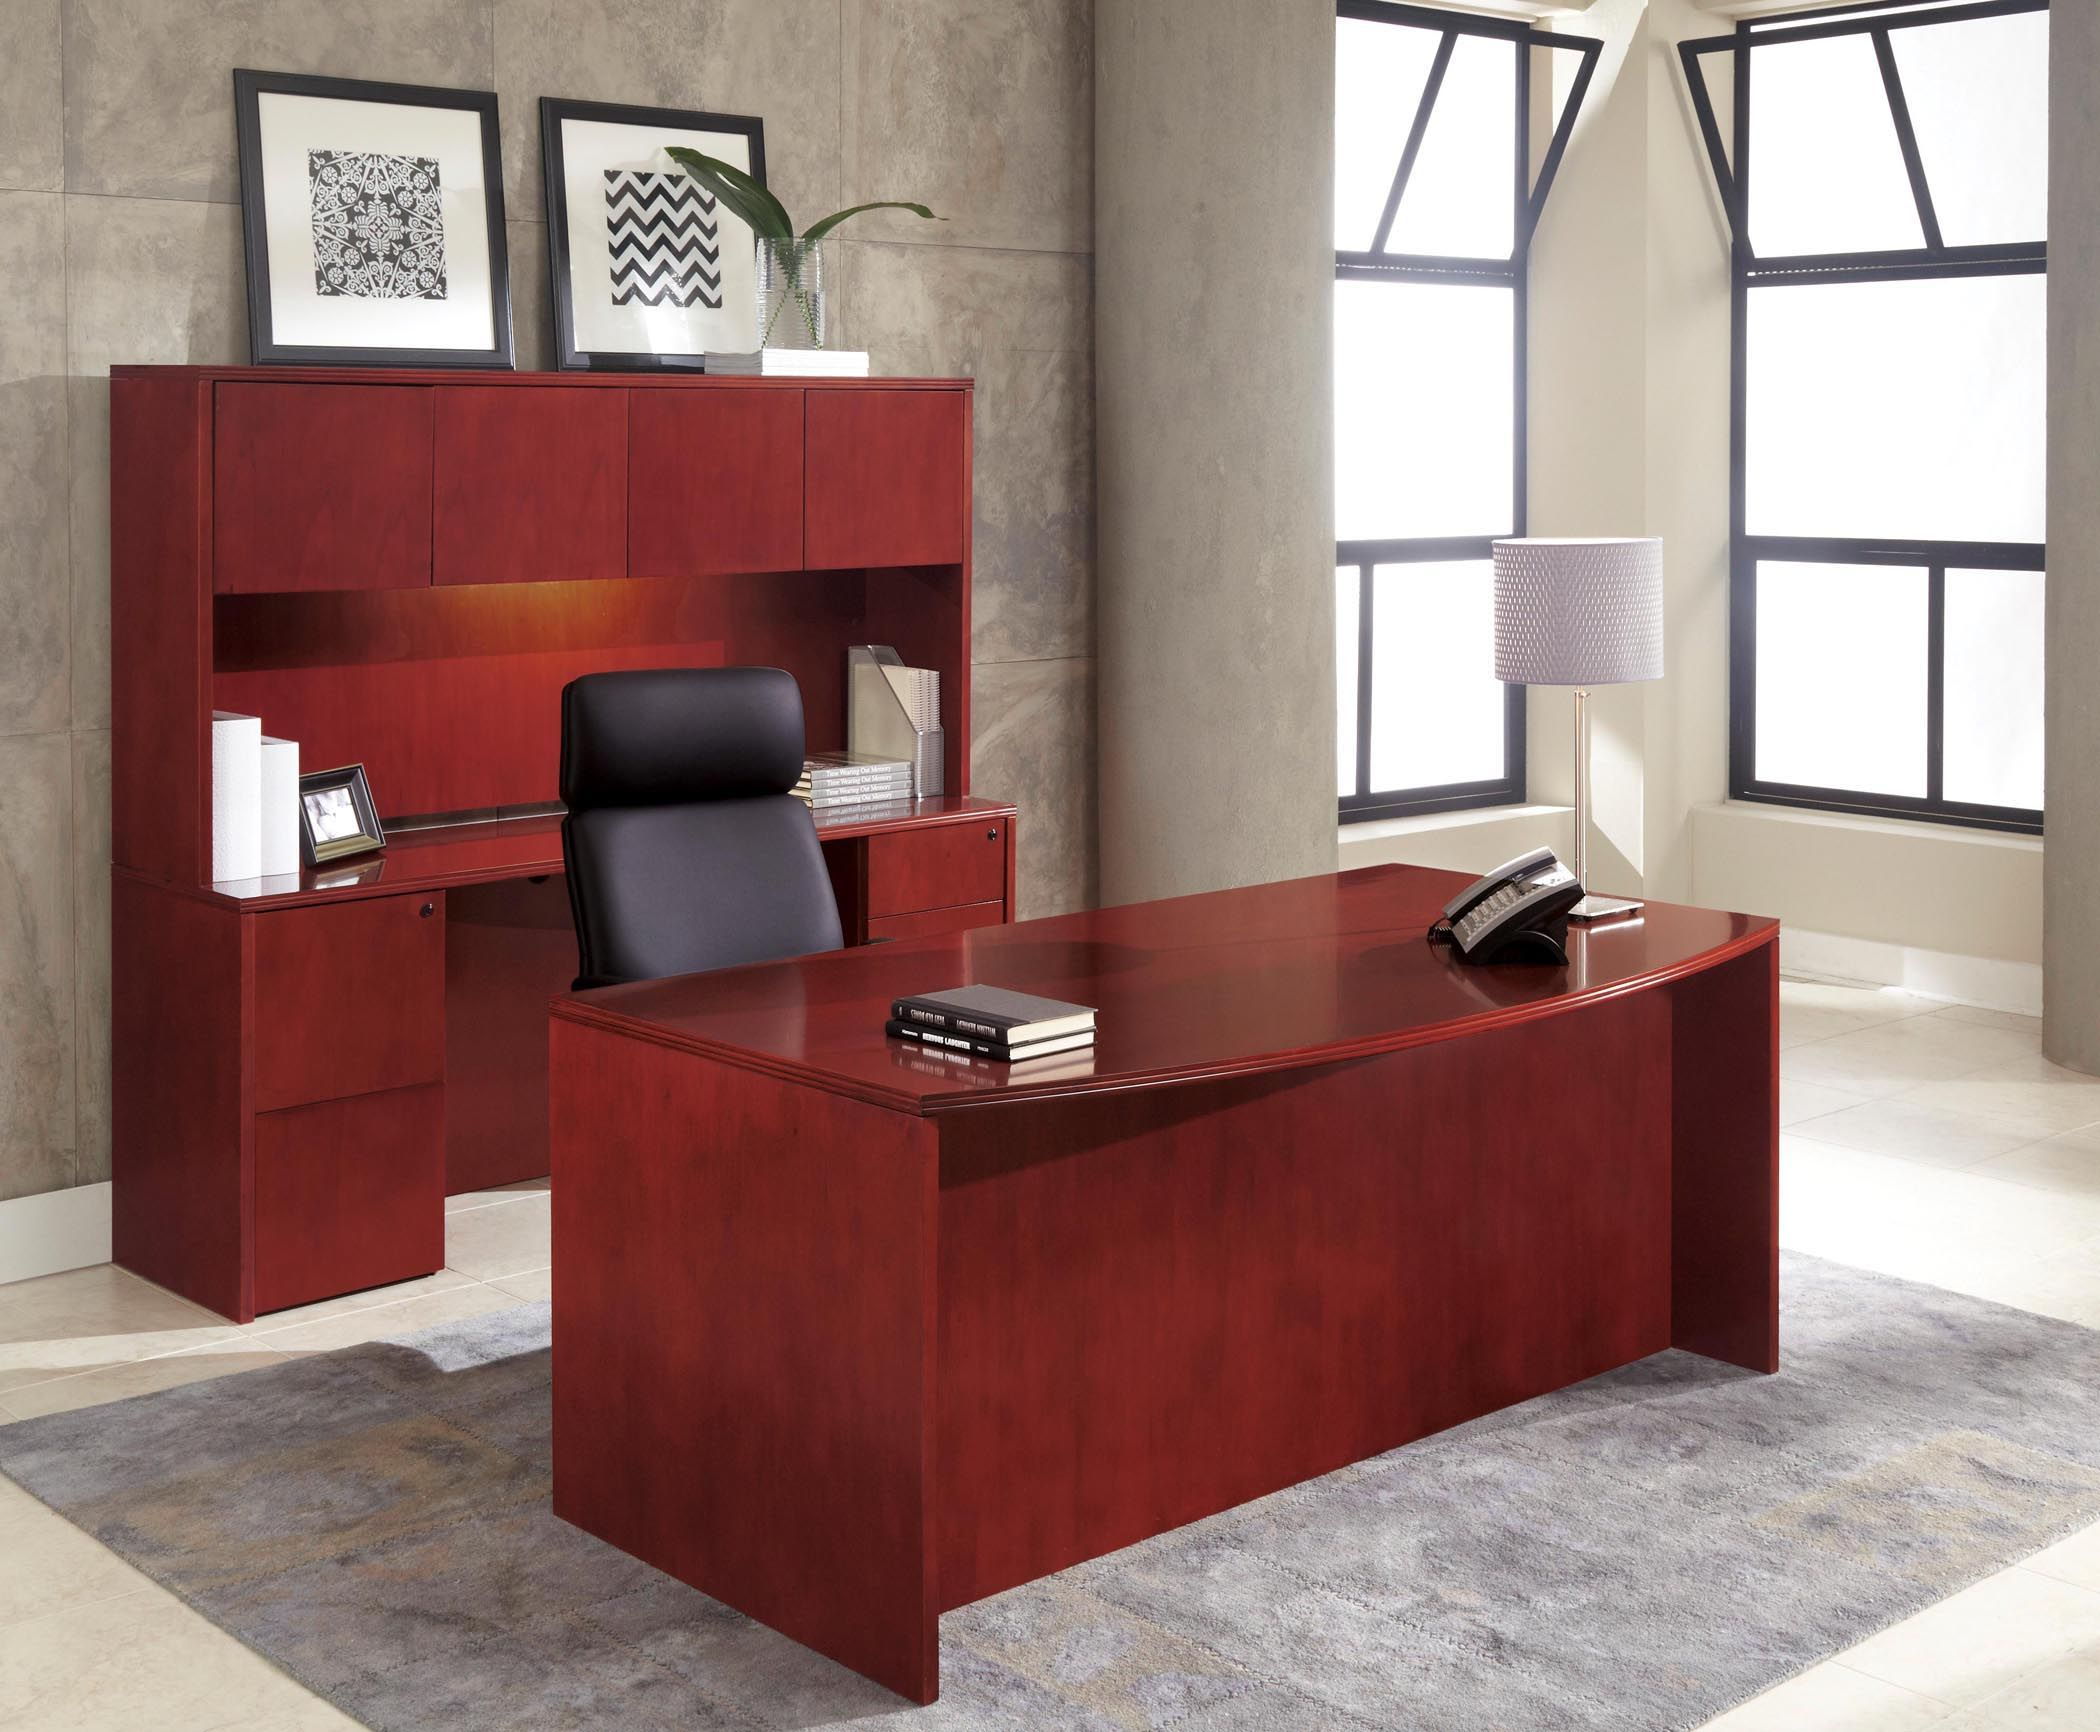 Red Cherry Wood Furniture